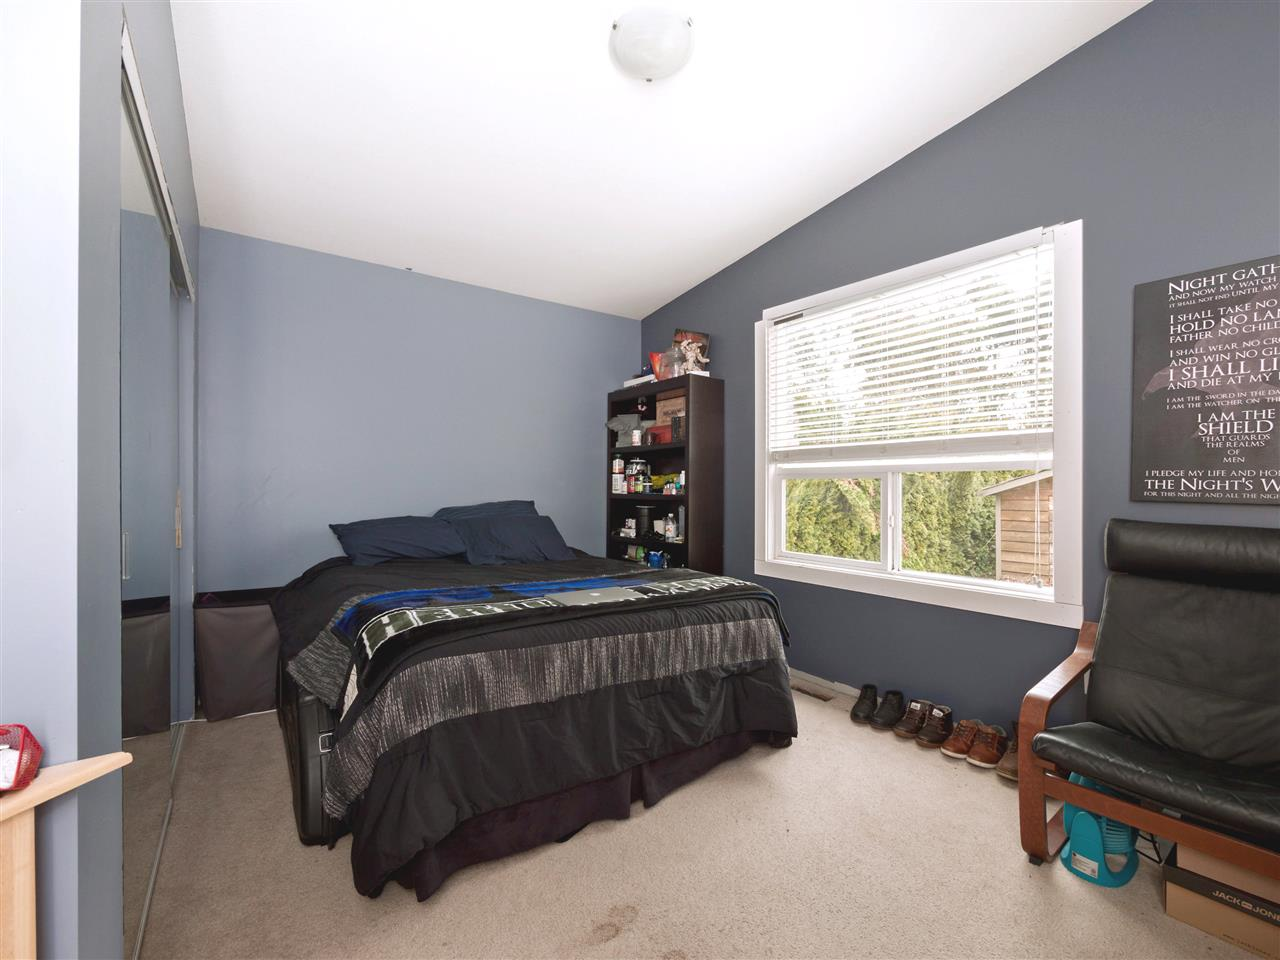 Photo 15: Photos: 33157 CHERRY Avenue in Mission: Mission BC House for sale : MLS® # R2236874